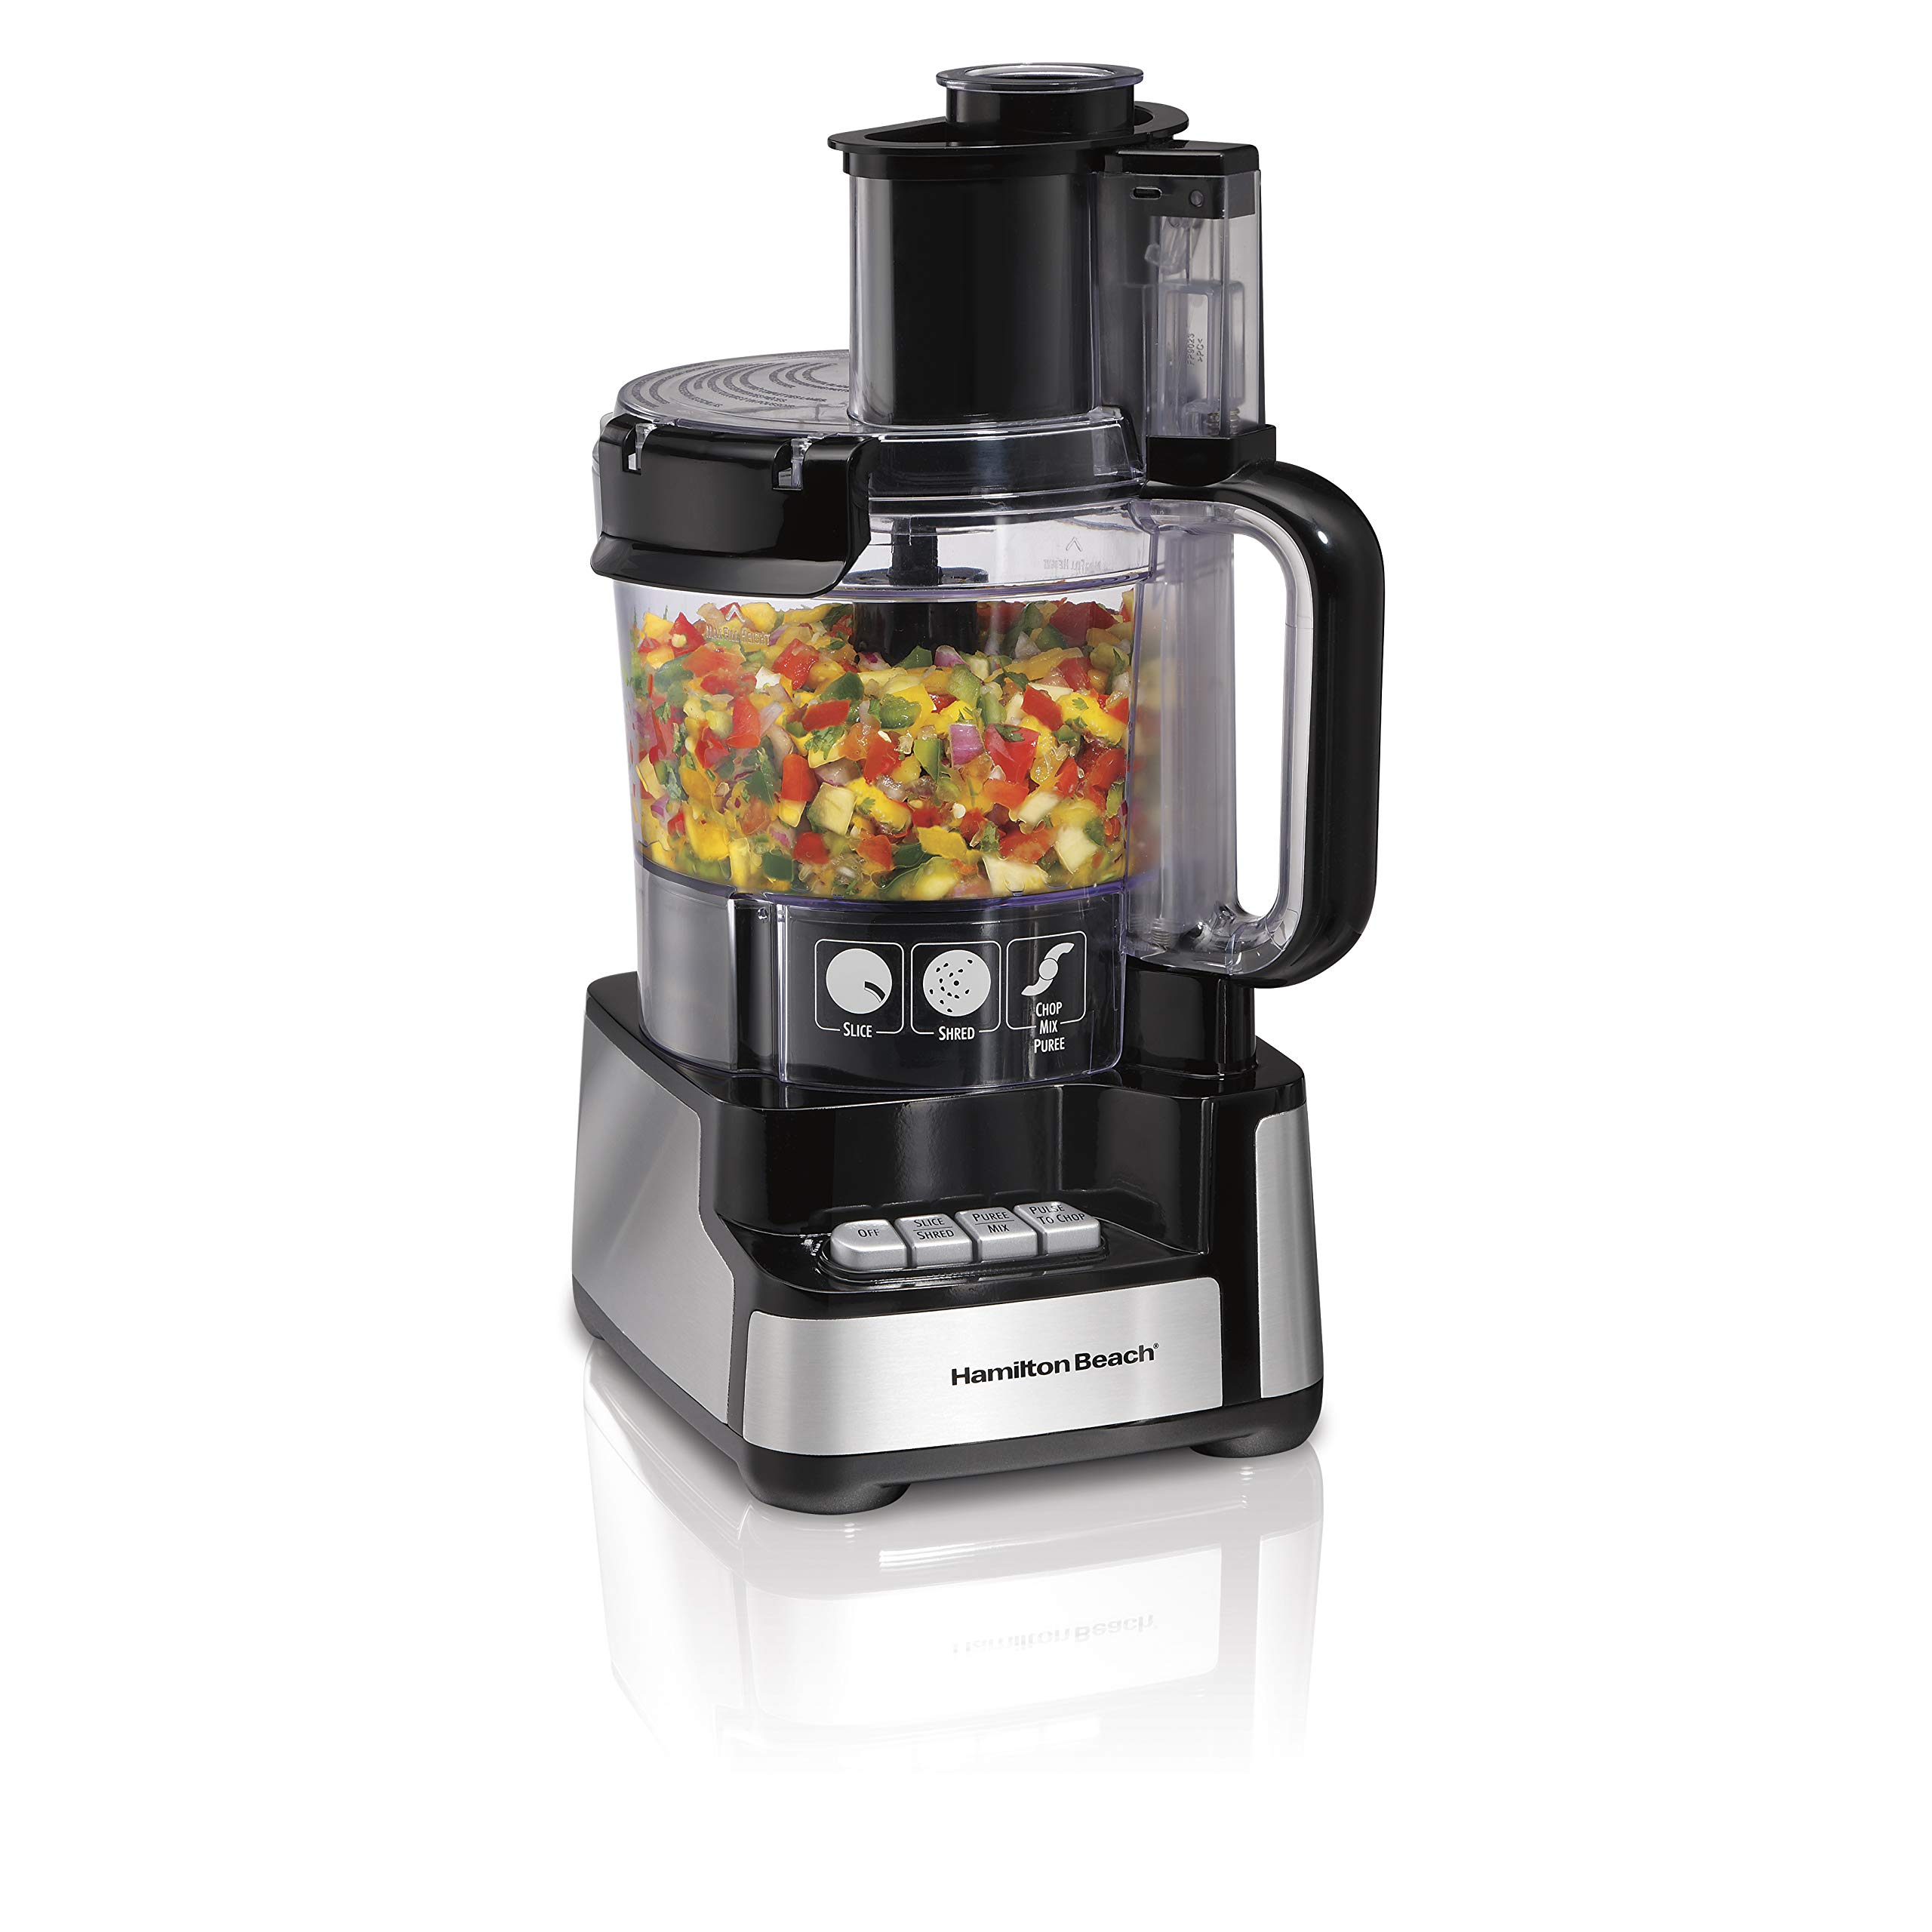 Hamilton Beach 12-Cup Stack & Snap Food Processor & Vegetable Chopper, Black (70725A)